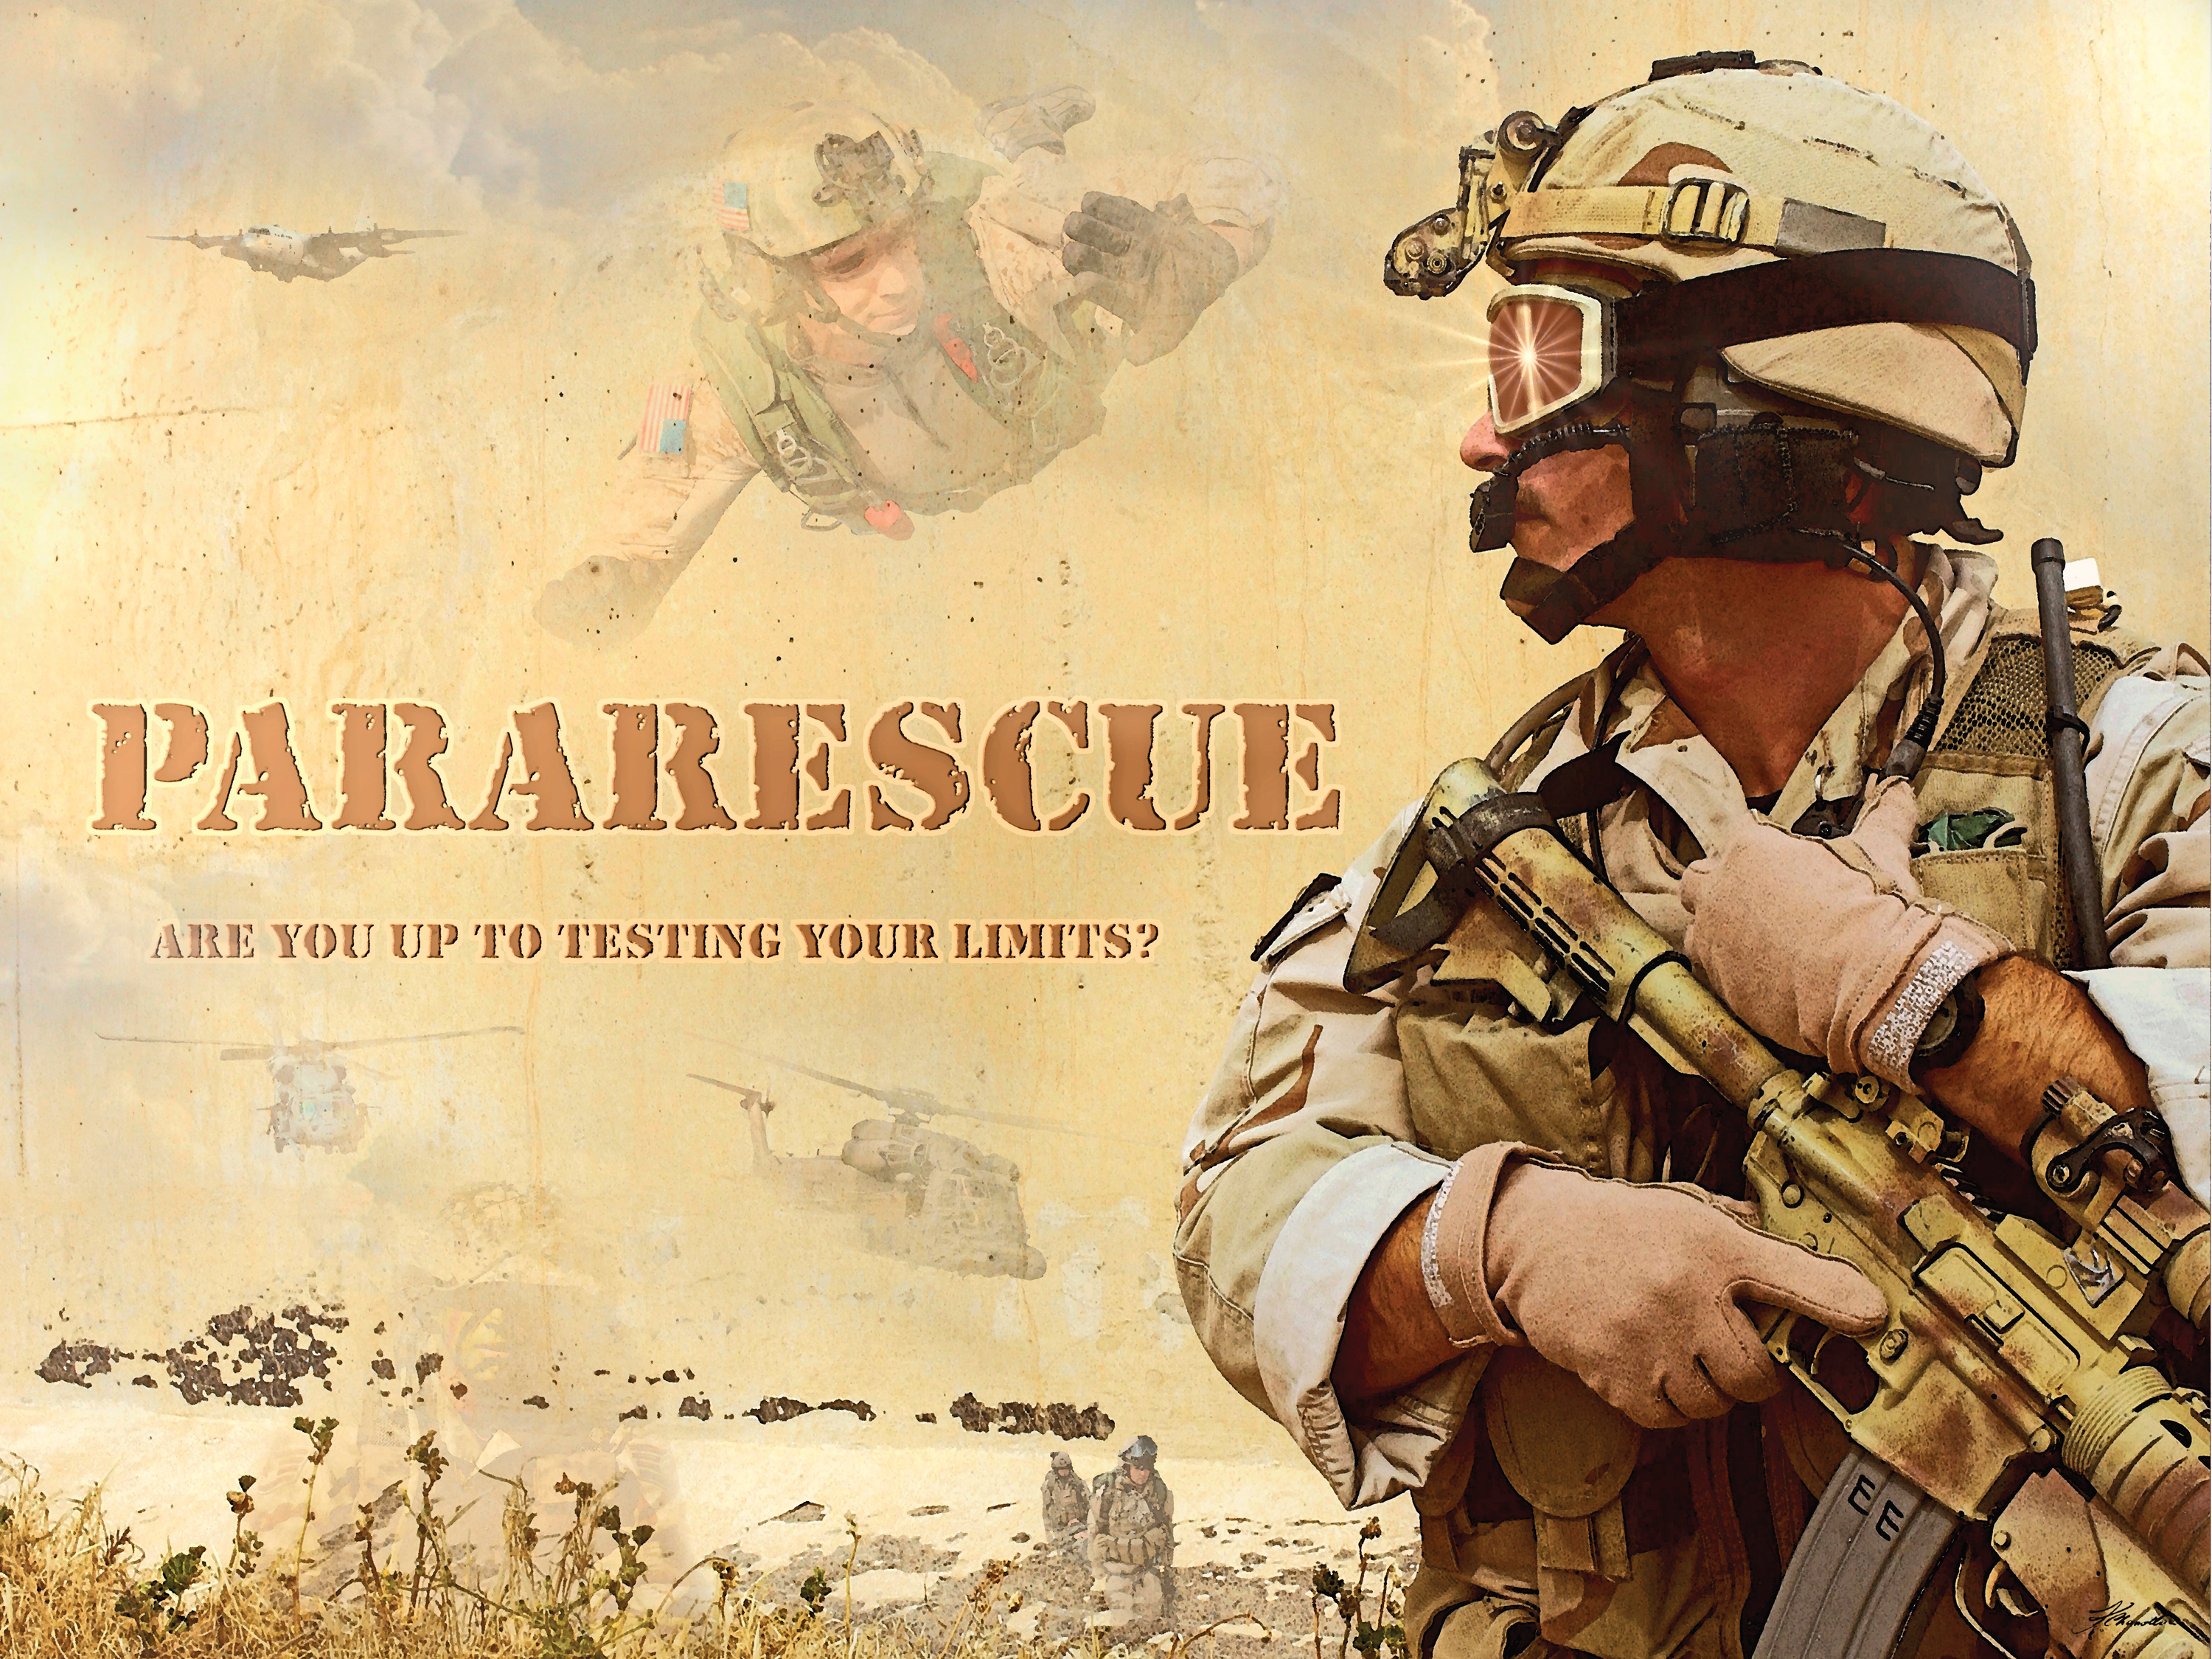 Air Force Pararescue Wallpaper and Background Image